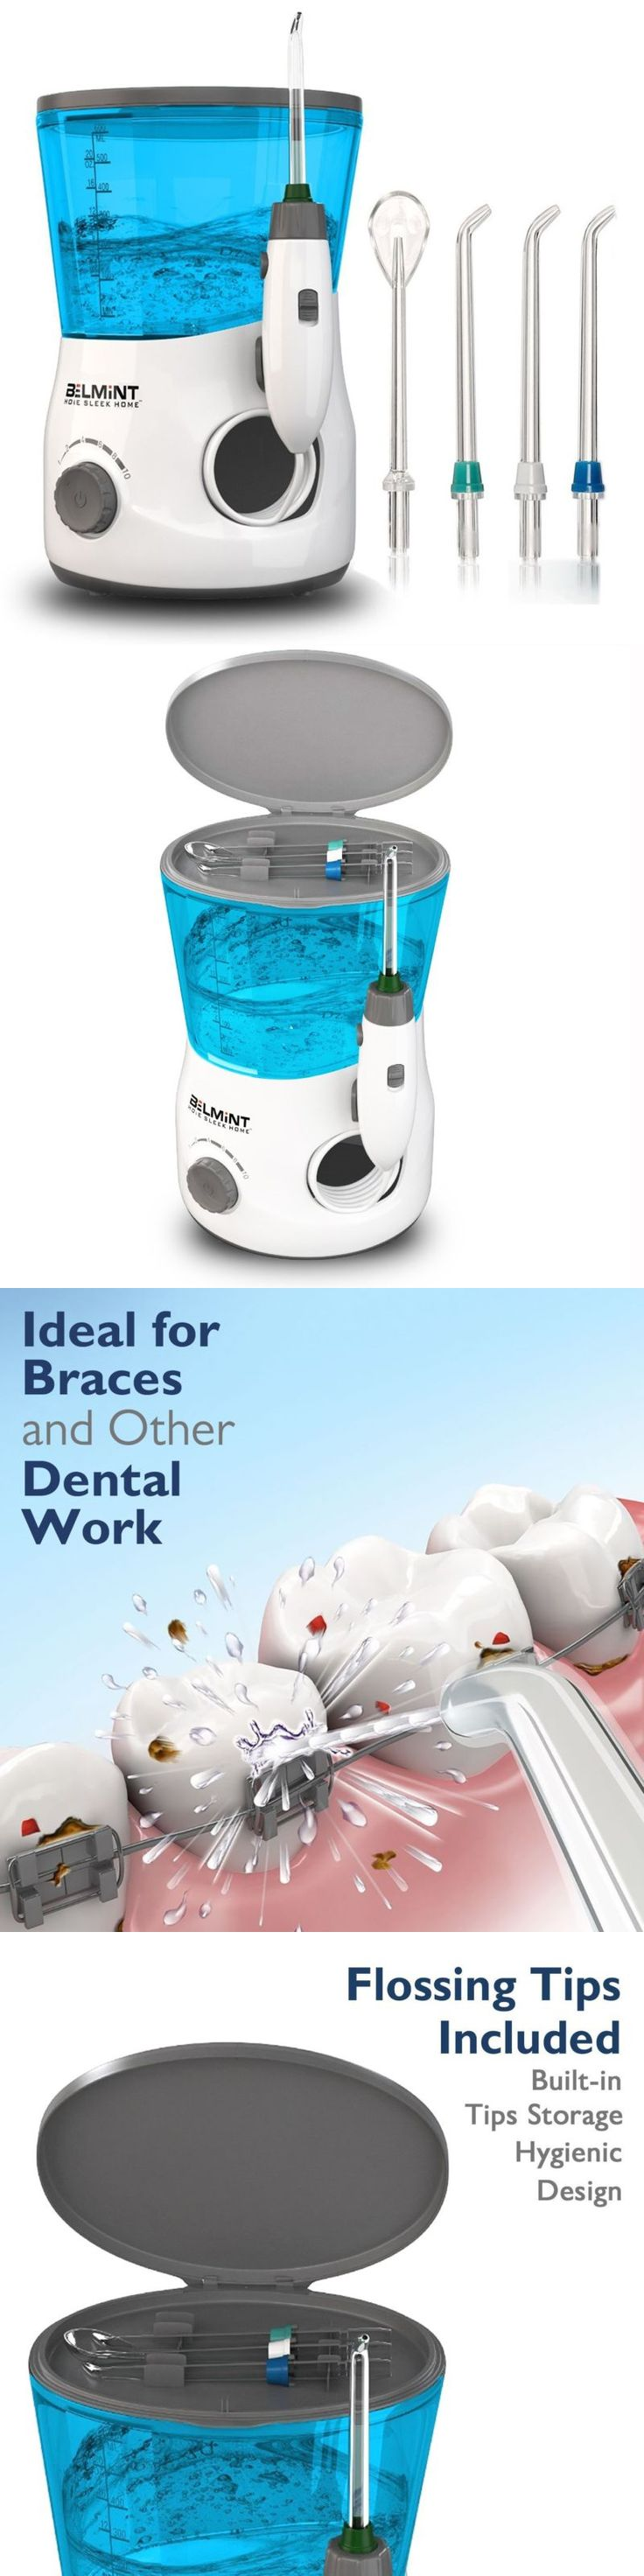 Thread where to buy ice picks in bulk - Dental Floss And Flossers Dental Water Jet Flosser Electric Toothbrush Oral Care Pick Irrigator Pressure